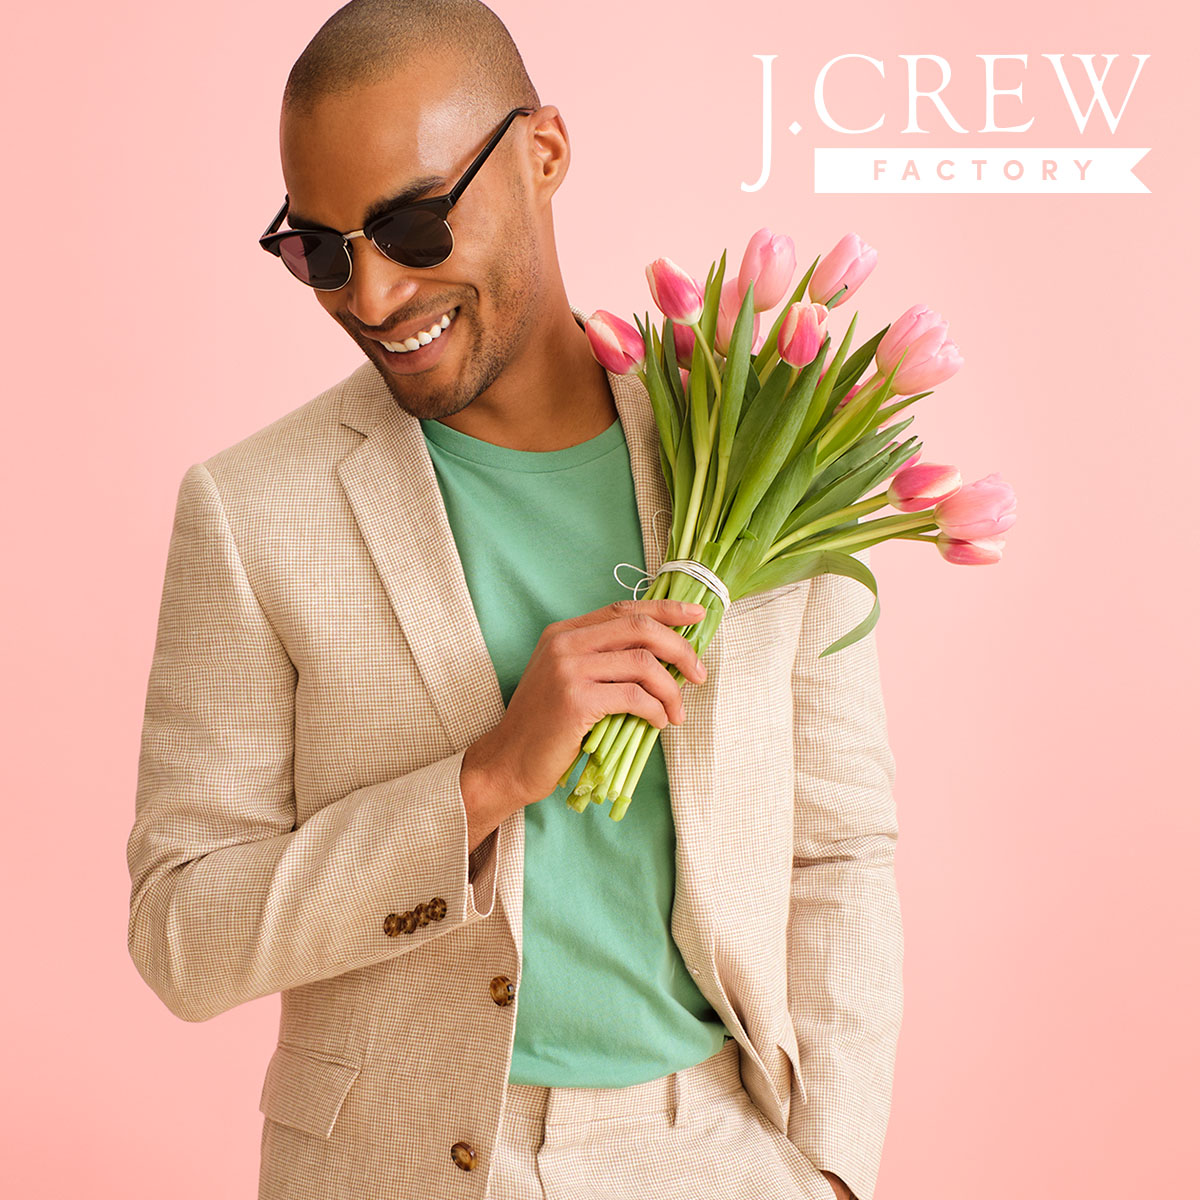 Man in a green shirt and tan coat holding tulips